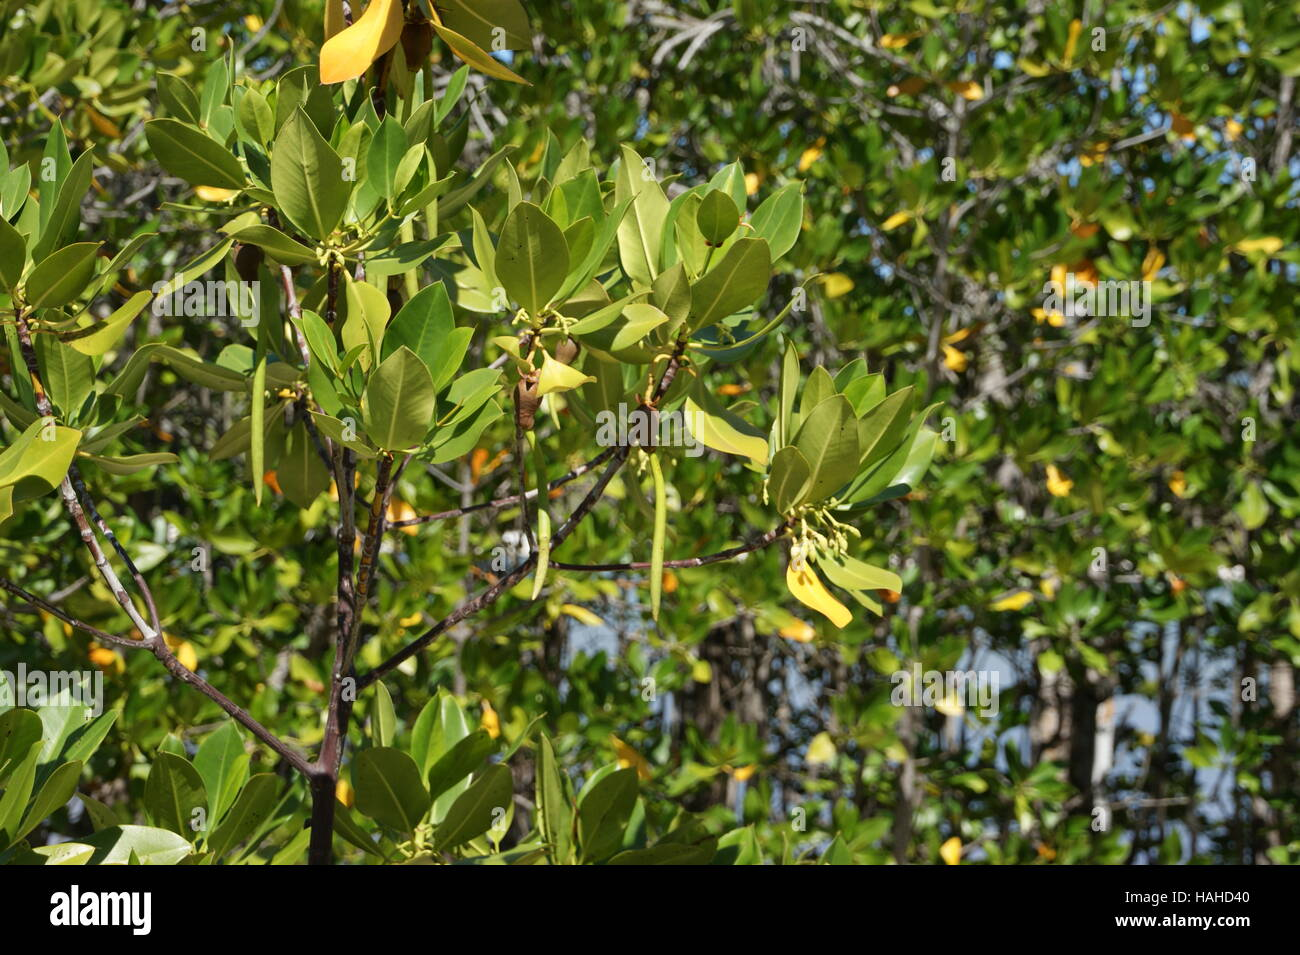 Rhizophora mucronata, loop-root mangrove, red mangrove or Asiatic ...